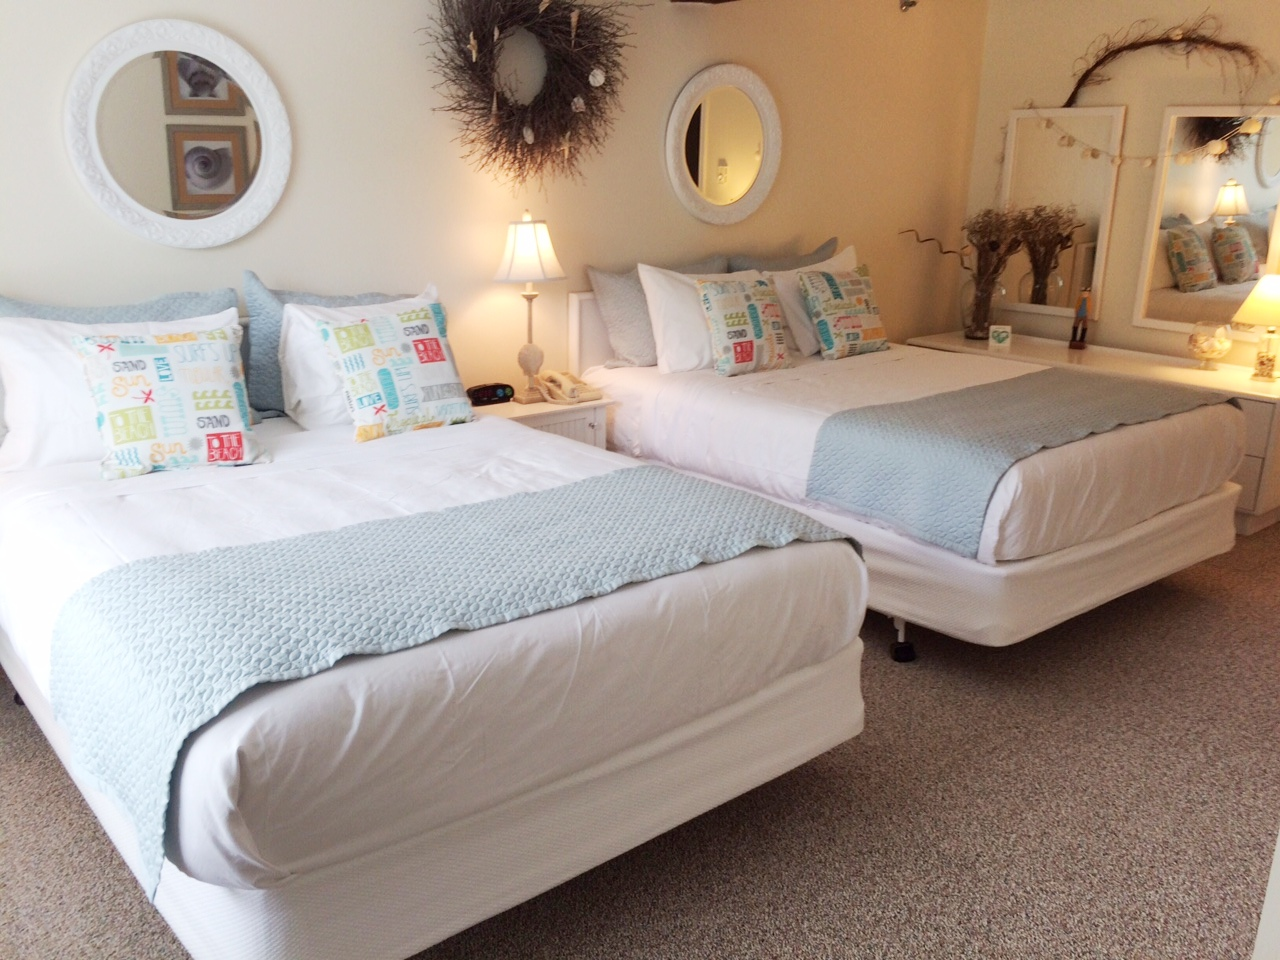 Your Bedroom Is Spacious, With A Private Entrance, Giving You Those Much  Deserved Secluded Moments To Yourself. Beautifully Appointed With Either  Queen ...